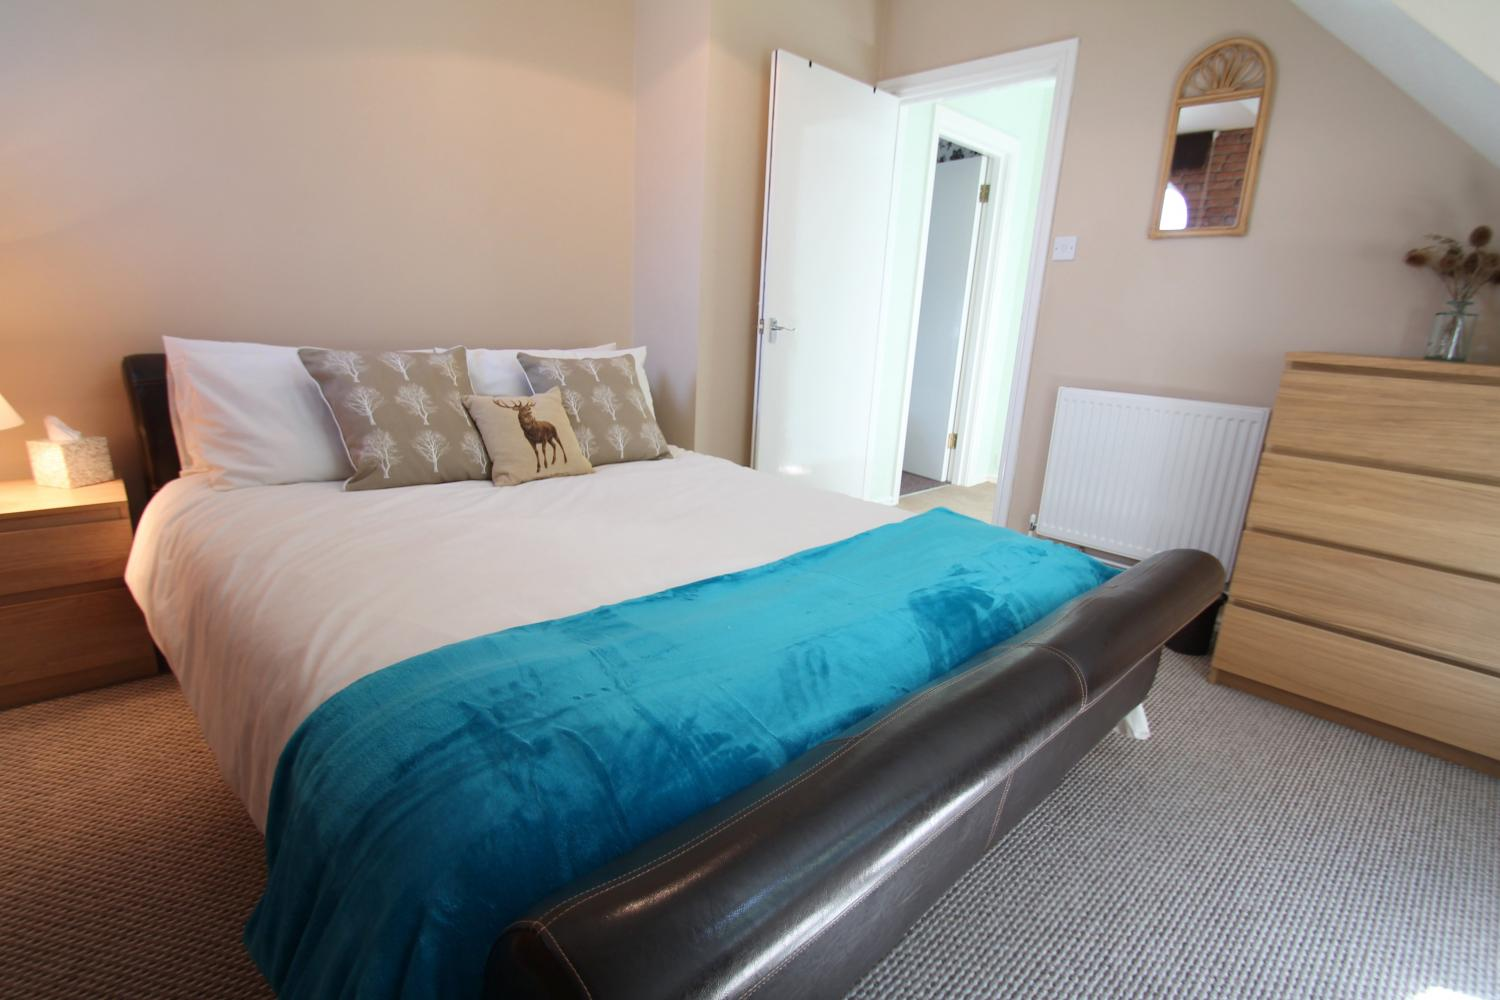 One of the double bedrooms at Seagulls Rest